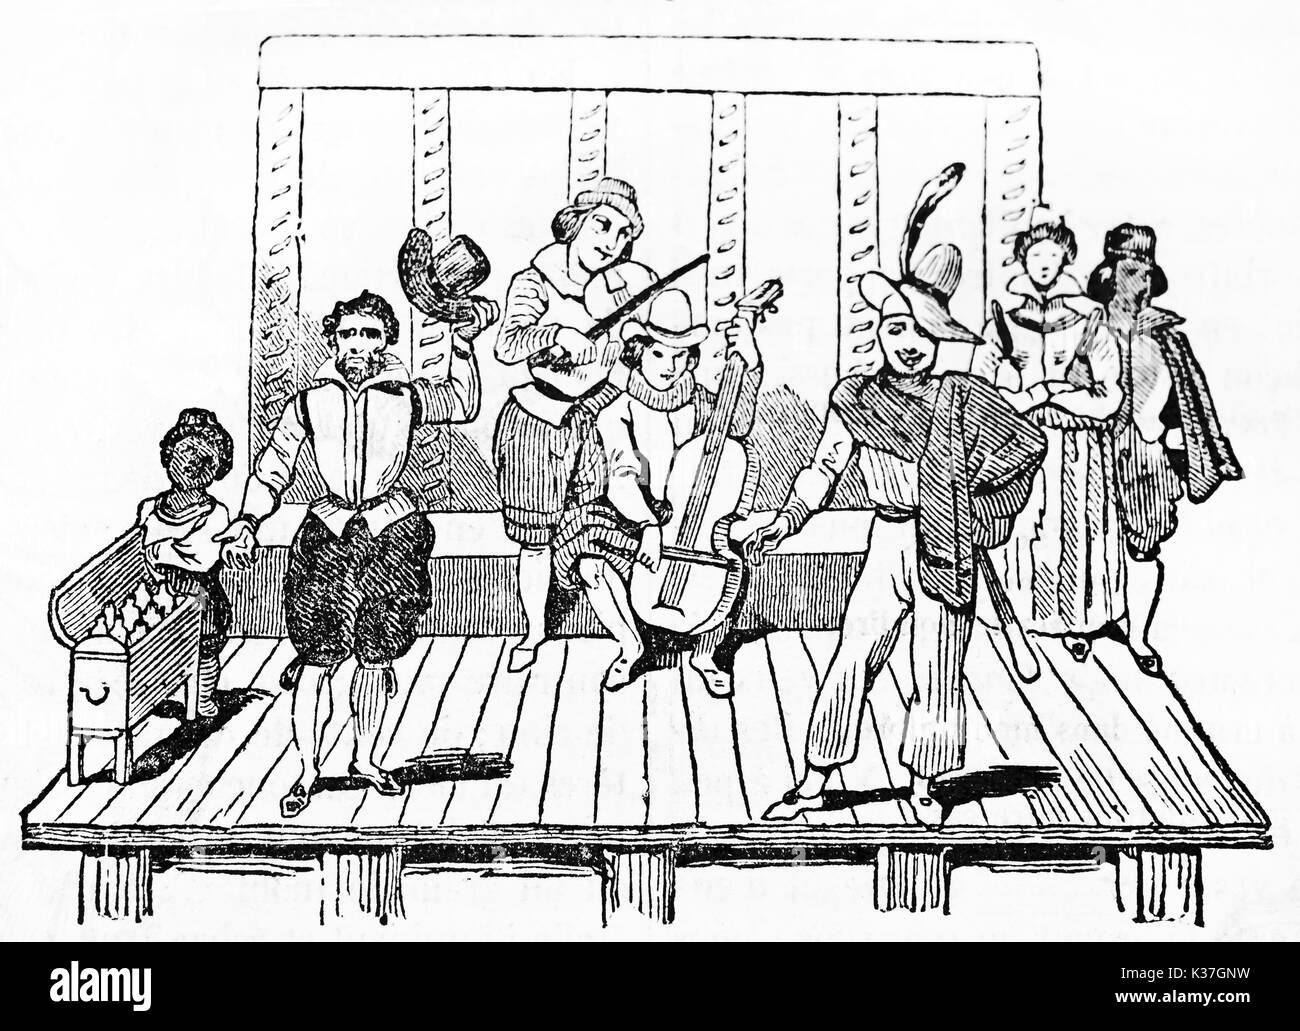 Ancient musicians and actors of Tabarin (and Mondor) Parisian street theater playing on the stage. After engraving of 17th century published on Magasin Pittoresque Paris 1834 - Stock Image